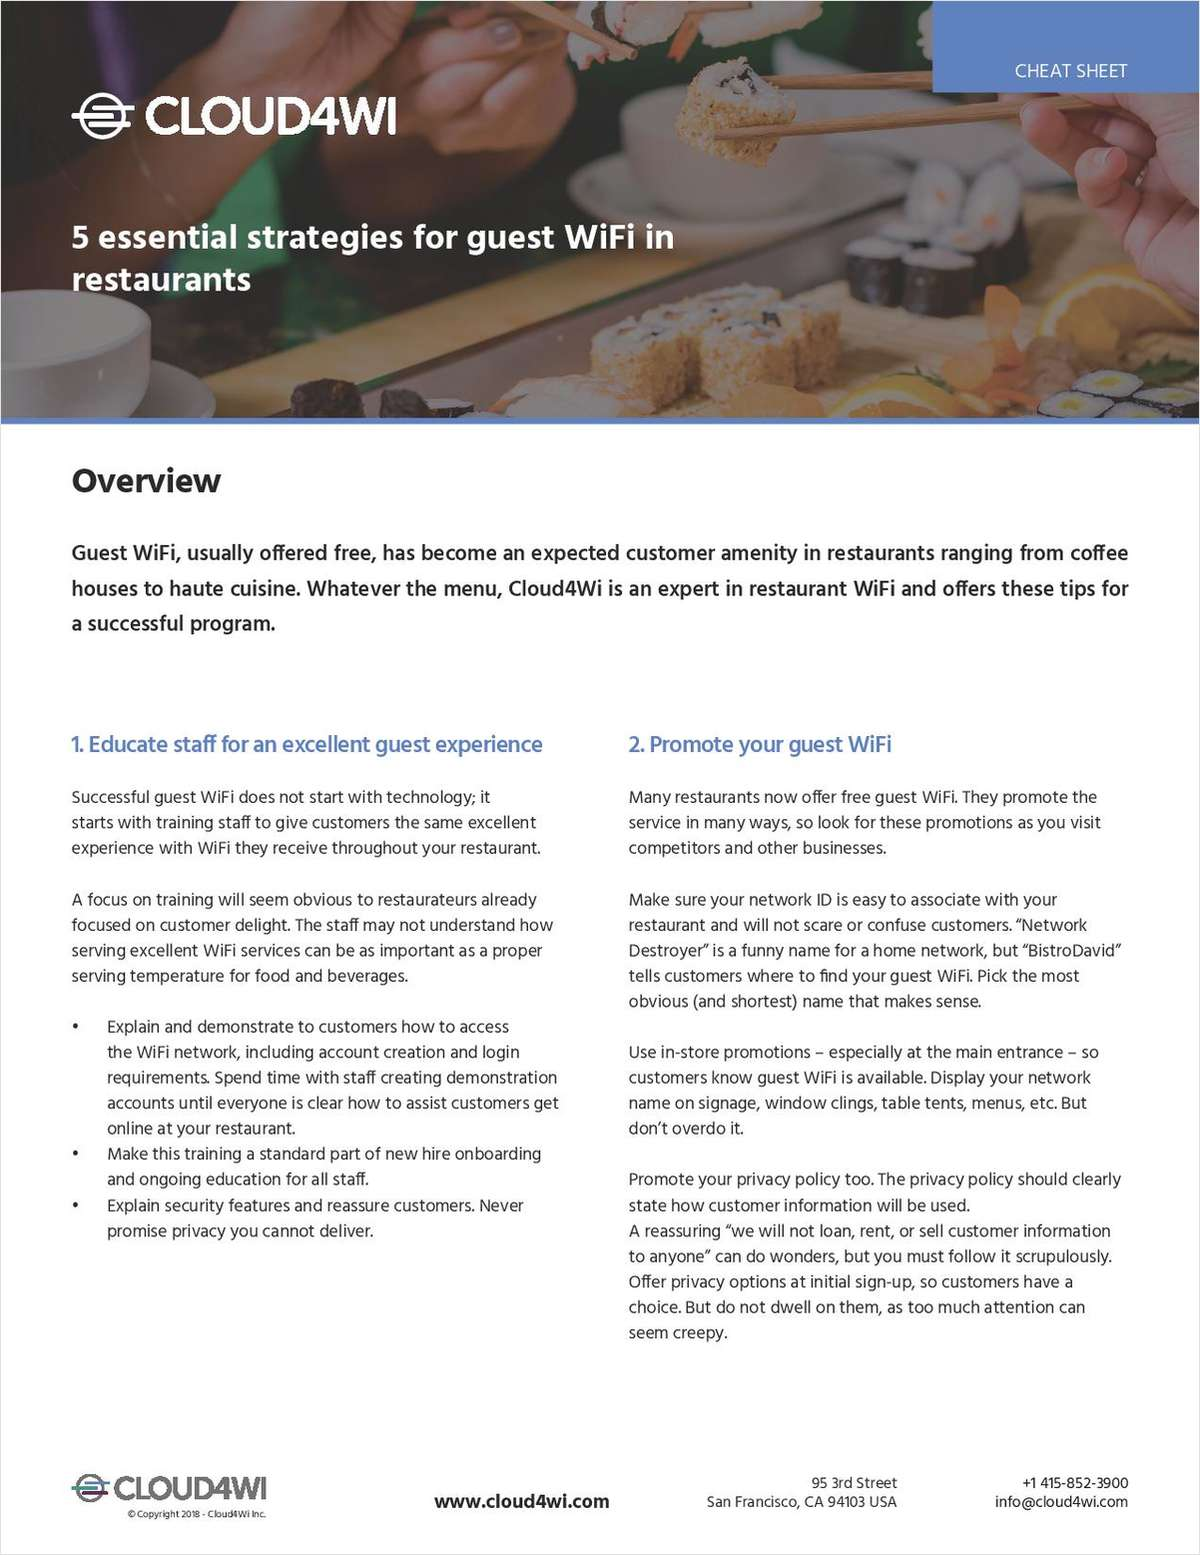 5 Essential Strategies for Guest WiFi in Restaurants